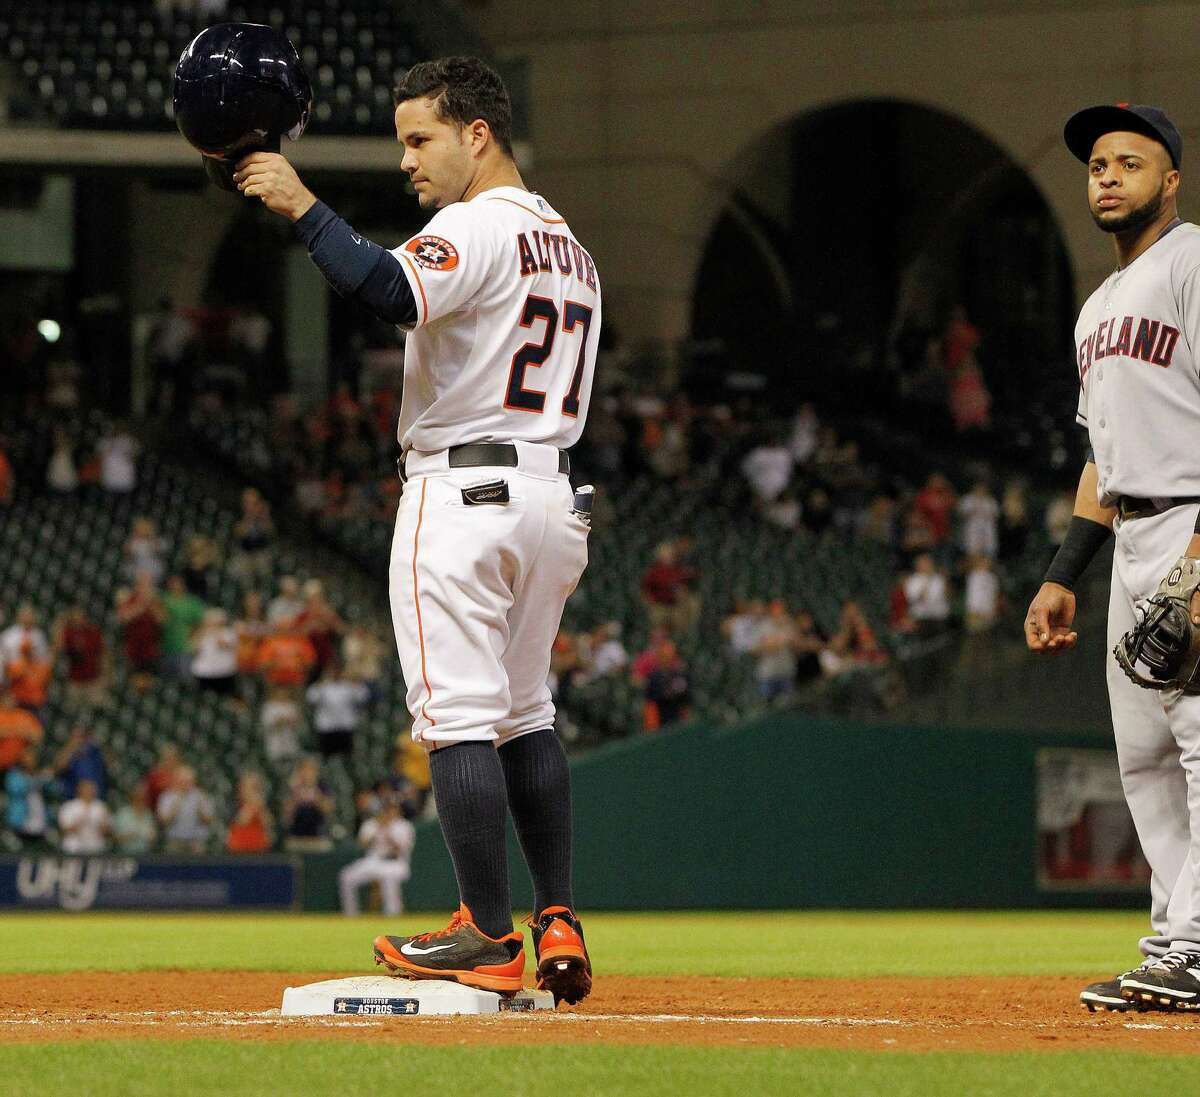 With a tip of his helmet Tuesday night, Jose Altuve acknowledges the Minute Maid Park crowd, and particularly Craig Biggio, during a passing-of-the-torch moment from one Astros second baseman to another. Altuve's seventh-inning single was his 211th hit of the season, one better than the club record set by Biggio in 1998.